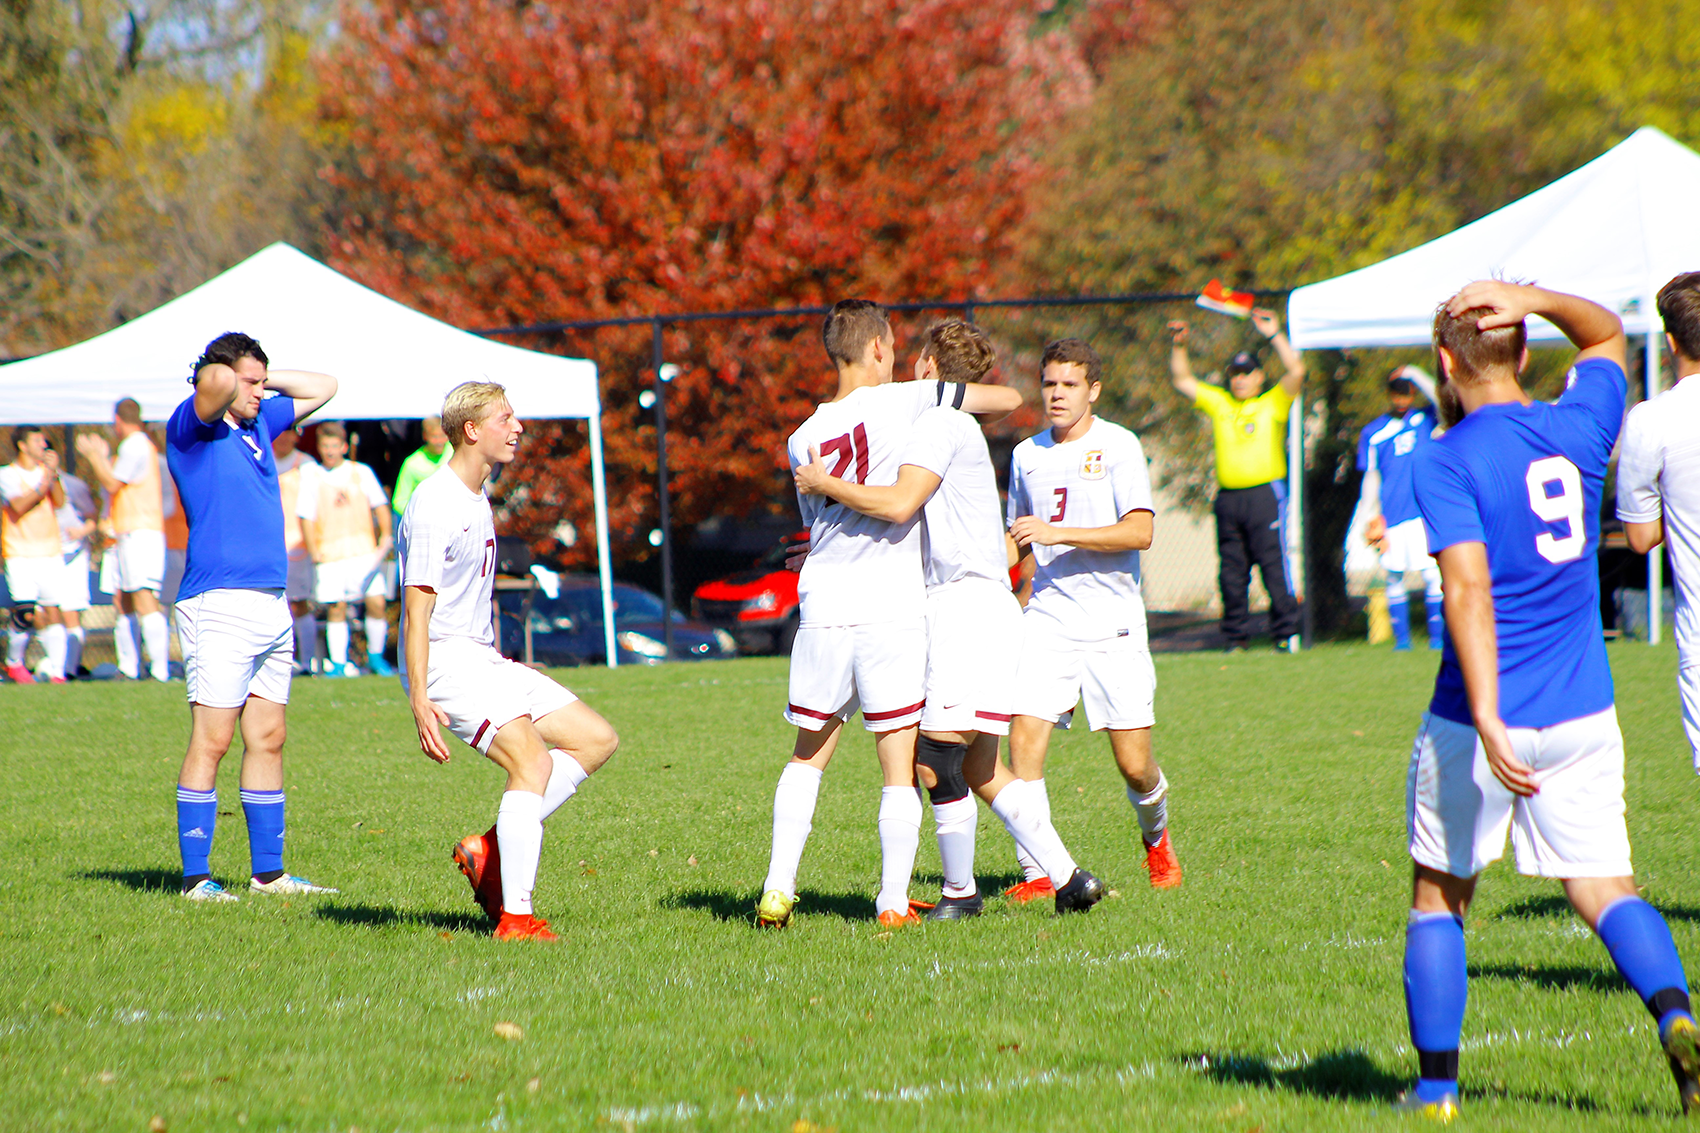 Eagles players congratulate Isaac Mosher after his goal gave Faith a 1-0 lead.